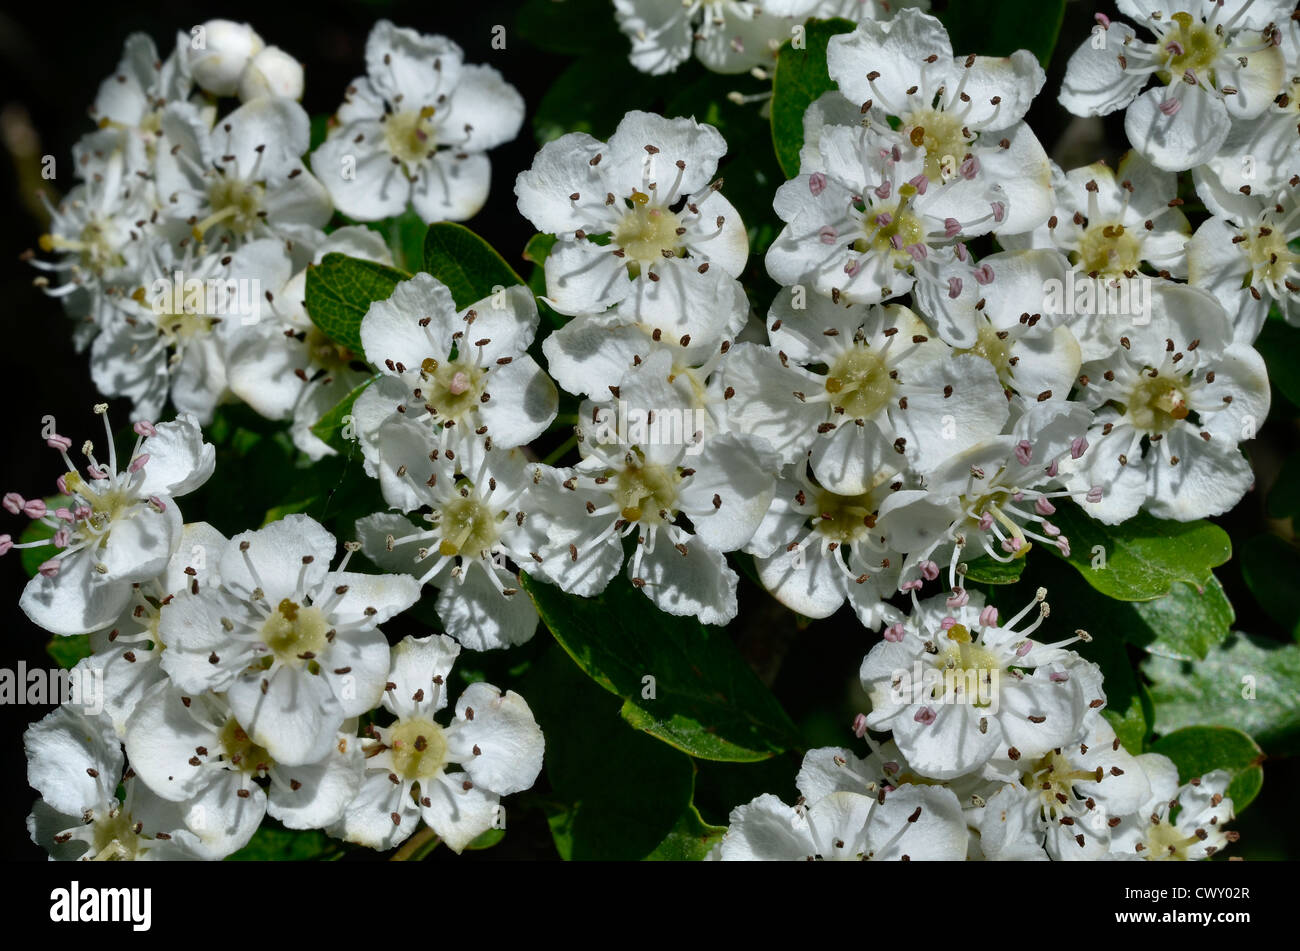 Flowers of Hawthorn tree / Crataegus monogyna. - Stock Image